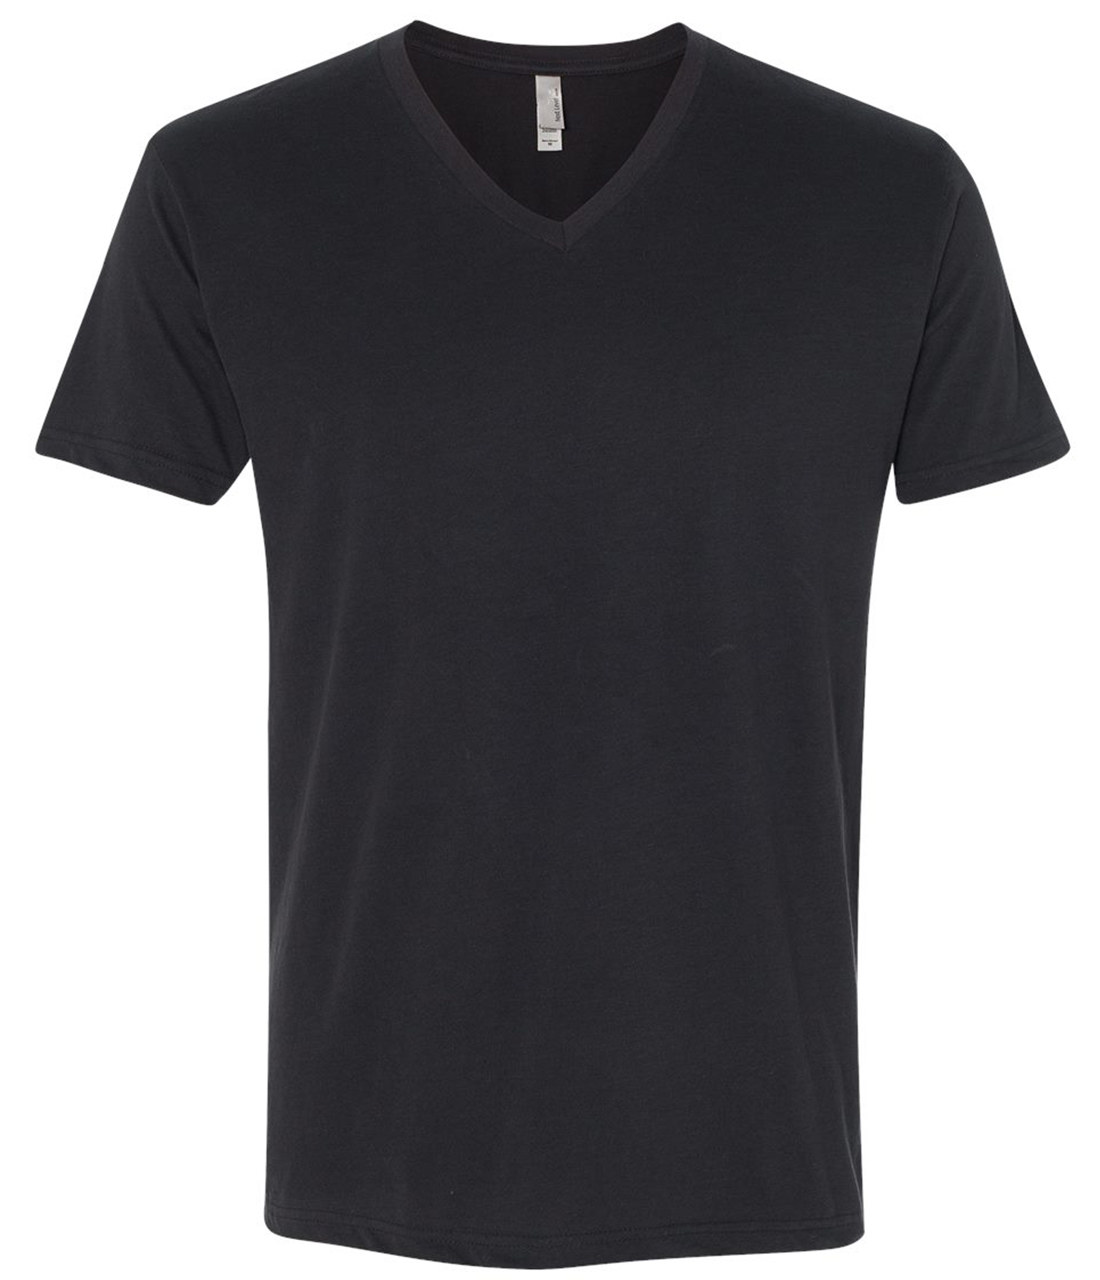 5b484a1a1 Picture of Next Level Men's Premium Fitted Sueded V-Neck Tee